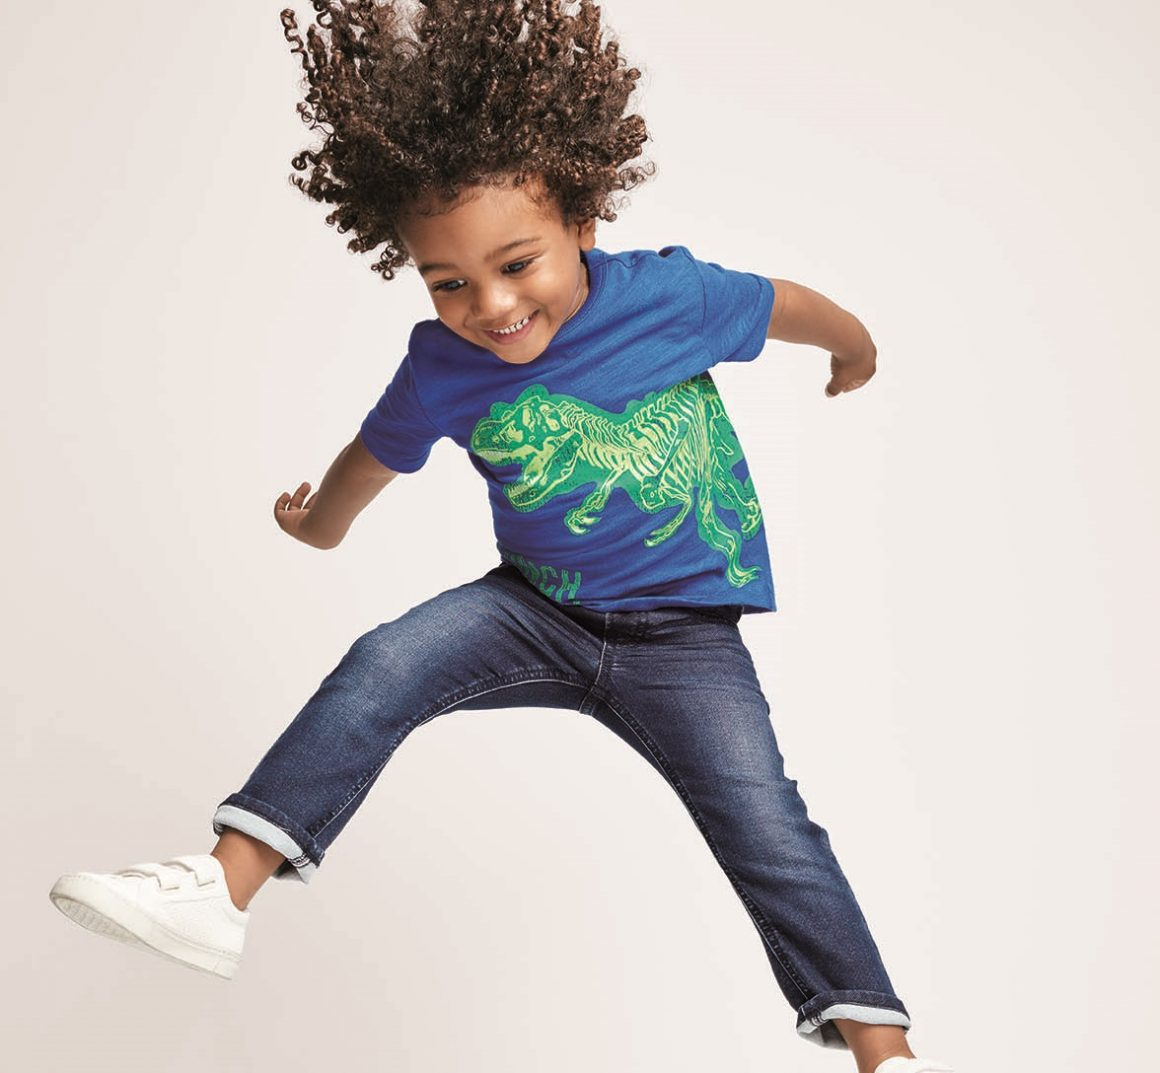 UP TO 40% OFF KIDS + BABY AT GAP